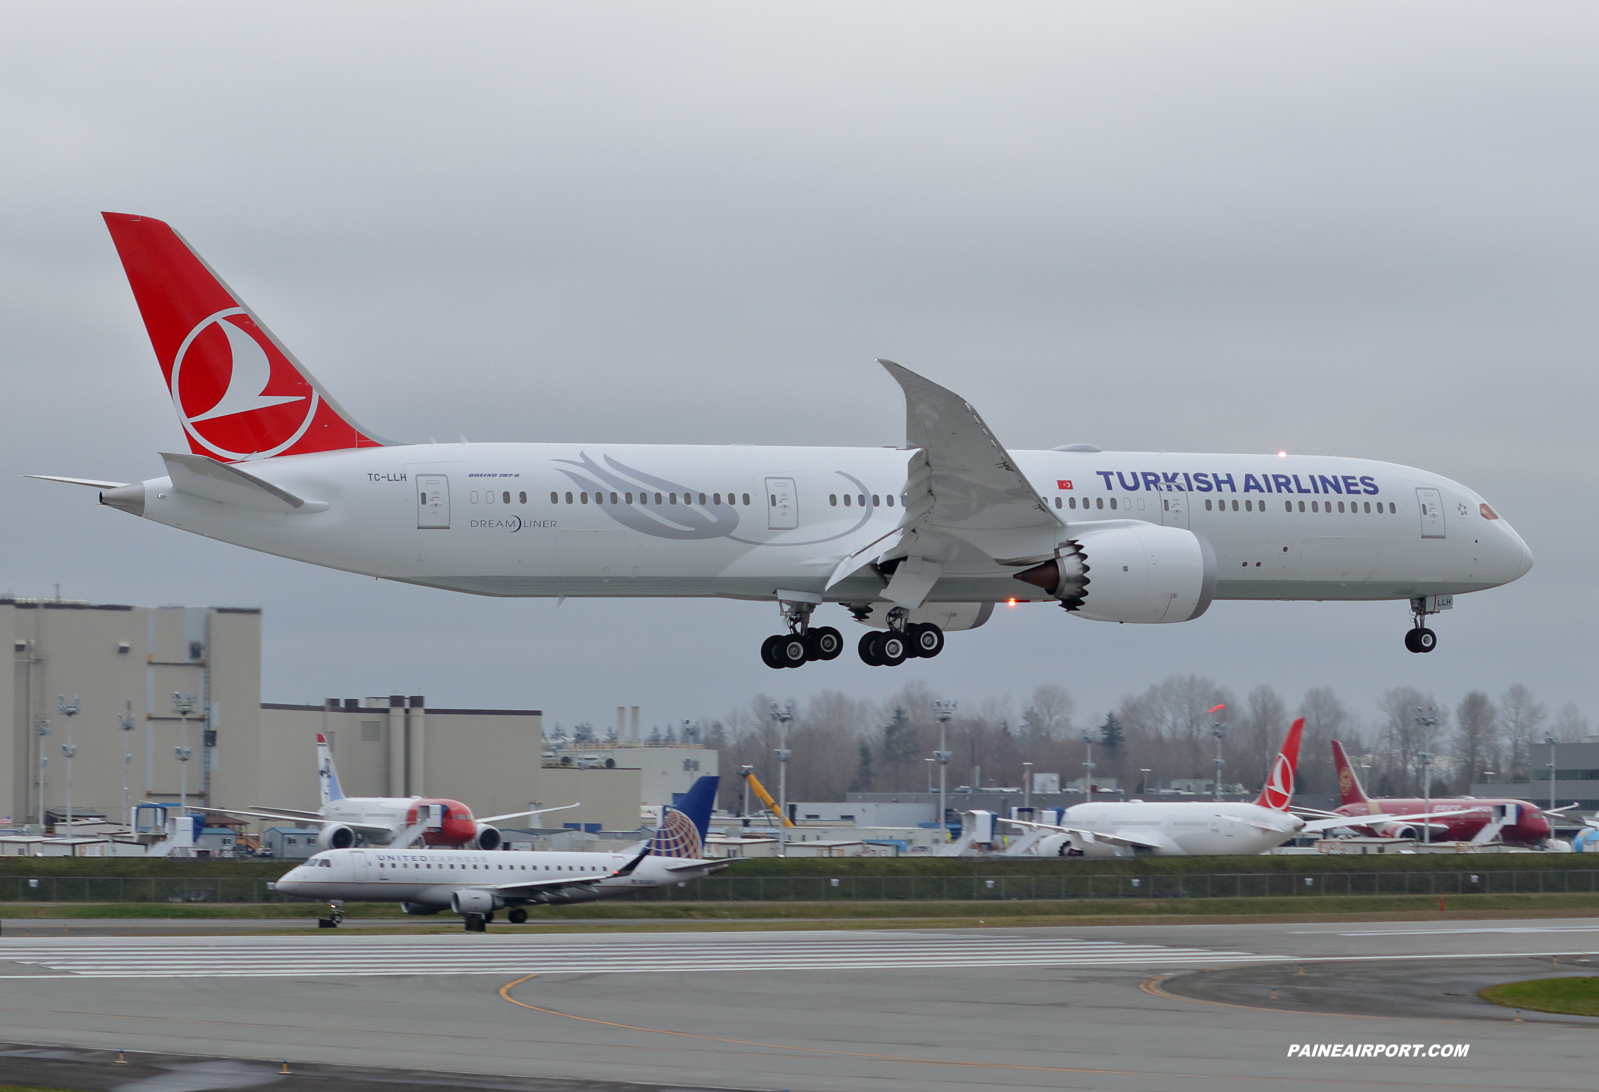 Turkish Airlines 787-9 TC-LLH at Paine Field